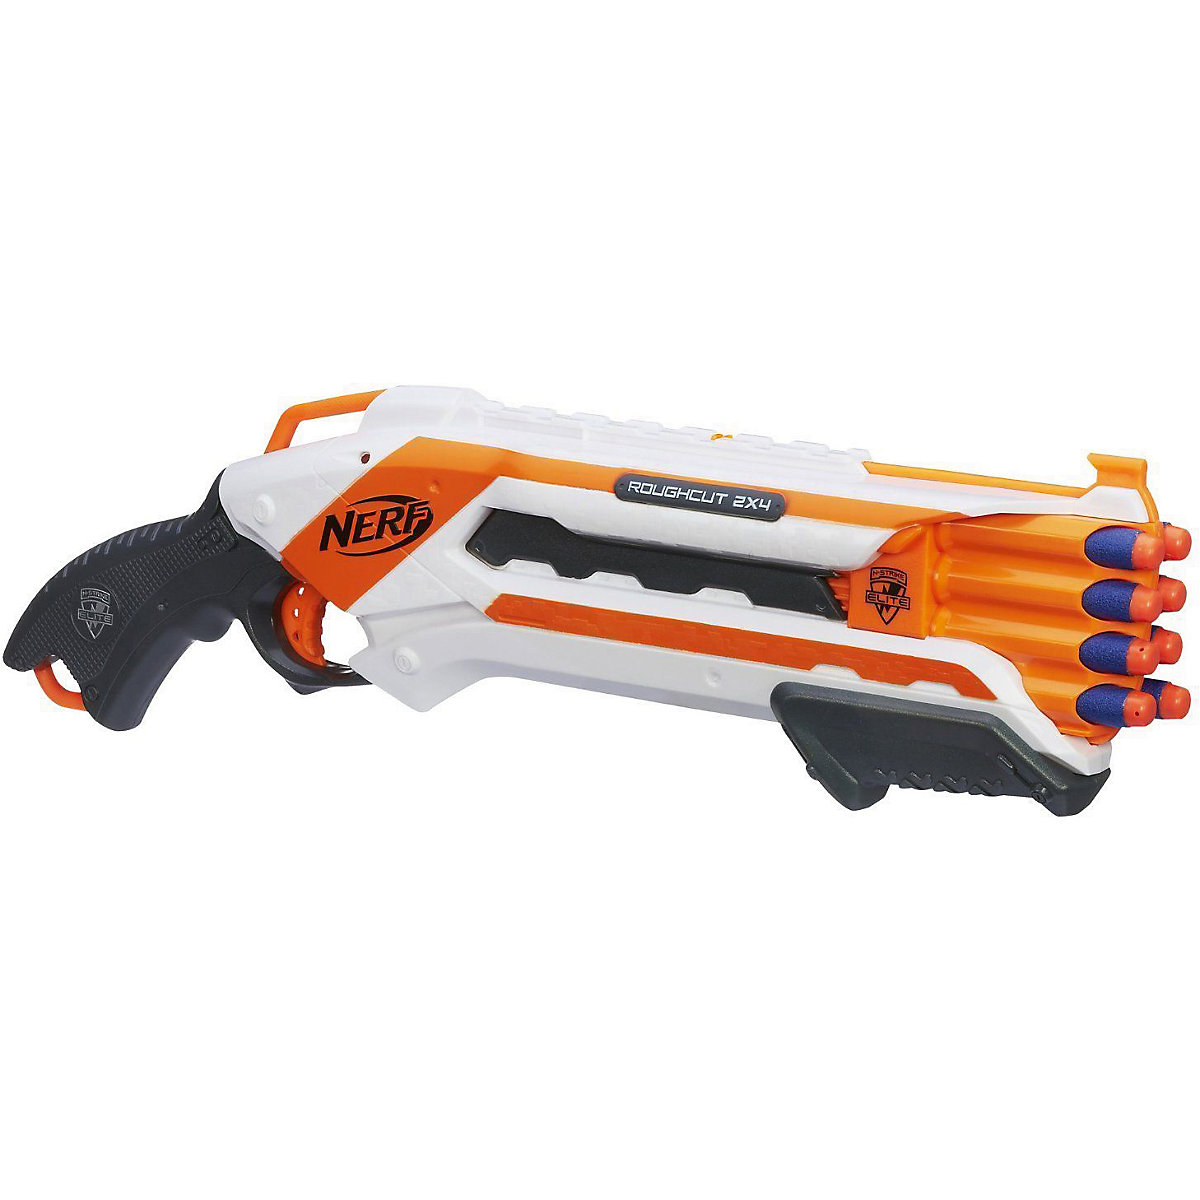 Toy Guns NERF 3222052 Children Kids Toy Gun Weapon Blasters Boys Shooting games Outdoor play toy guns nerf 3550830 children kids toy gun weapon blasters boys shooting games outdoor play